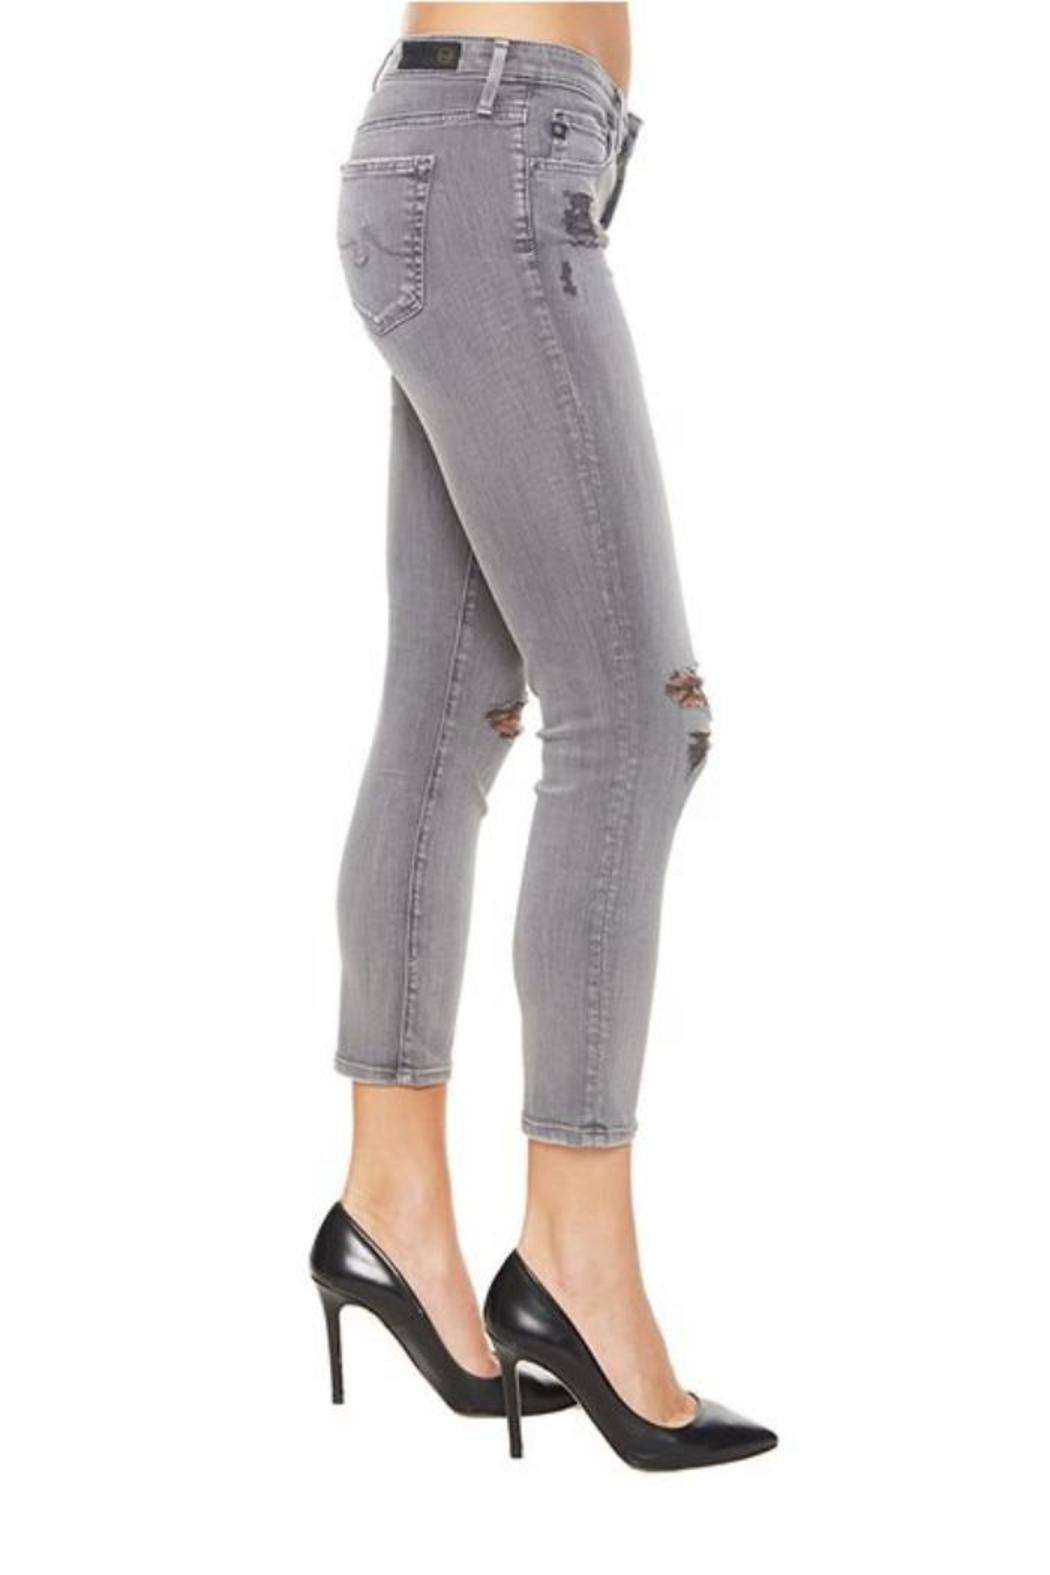 Ag Jeans Stilt Crop Sun Faded From Canada By Era Style